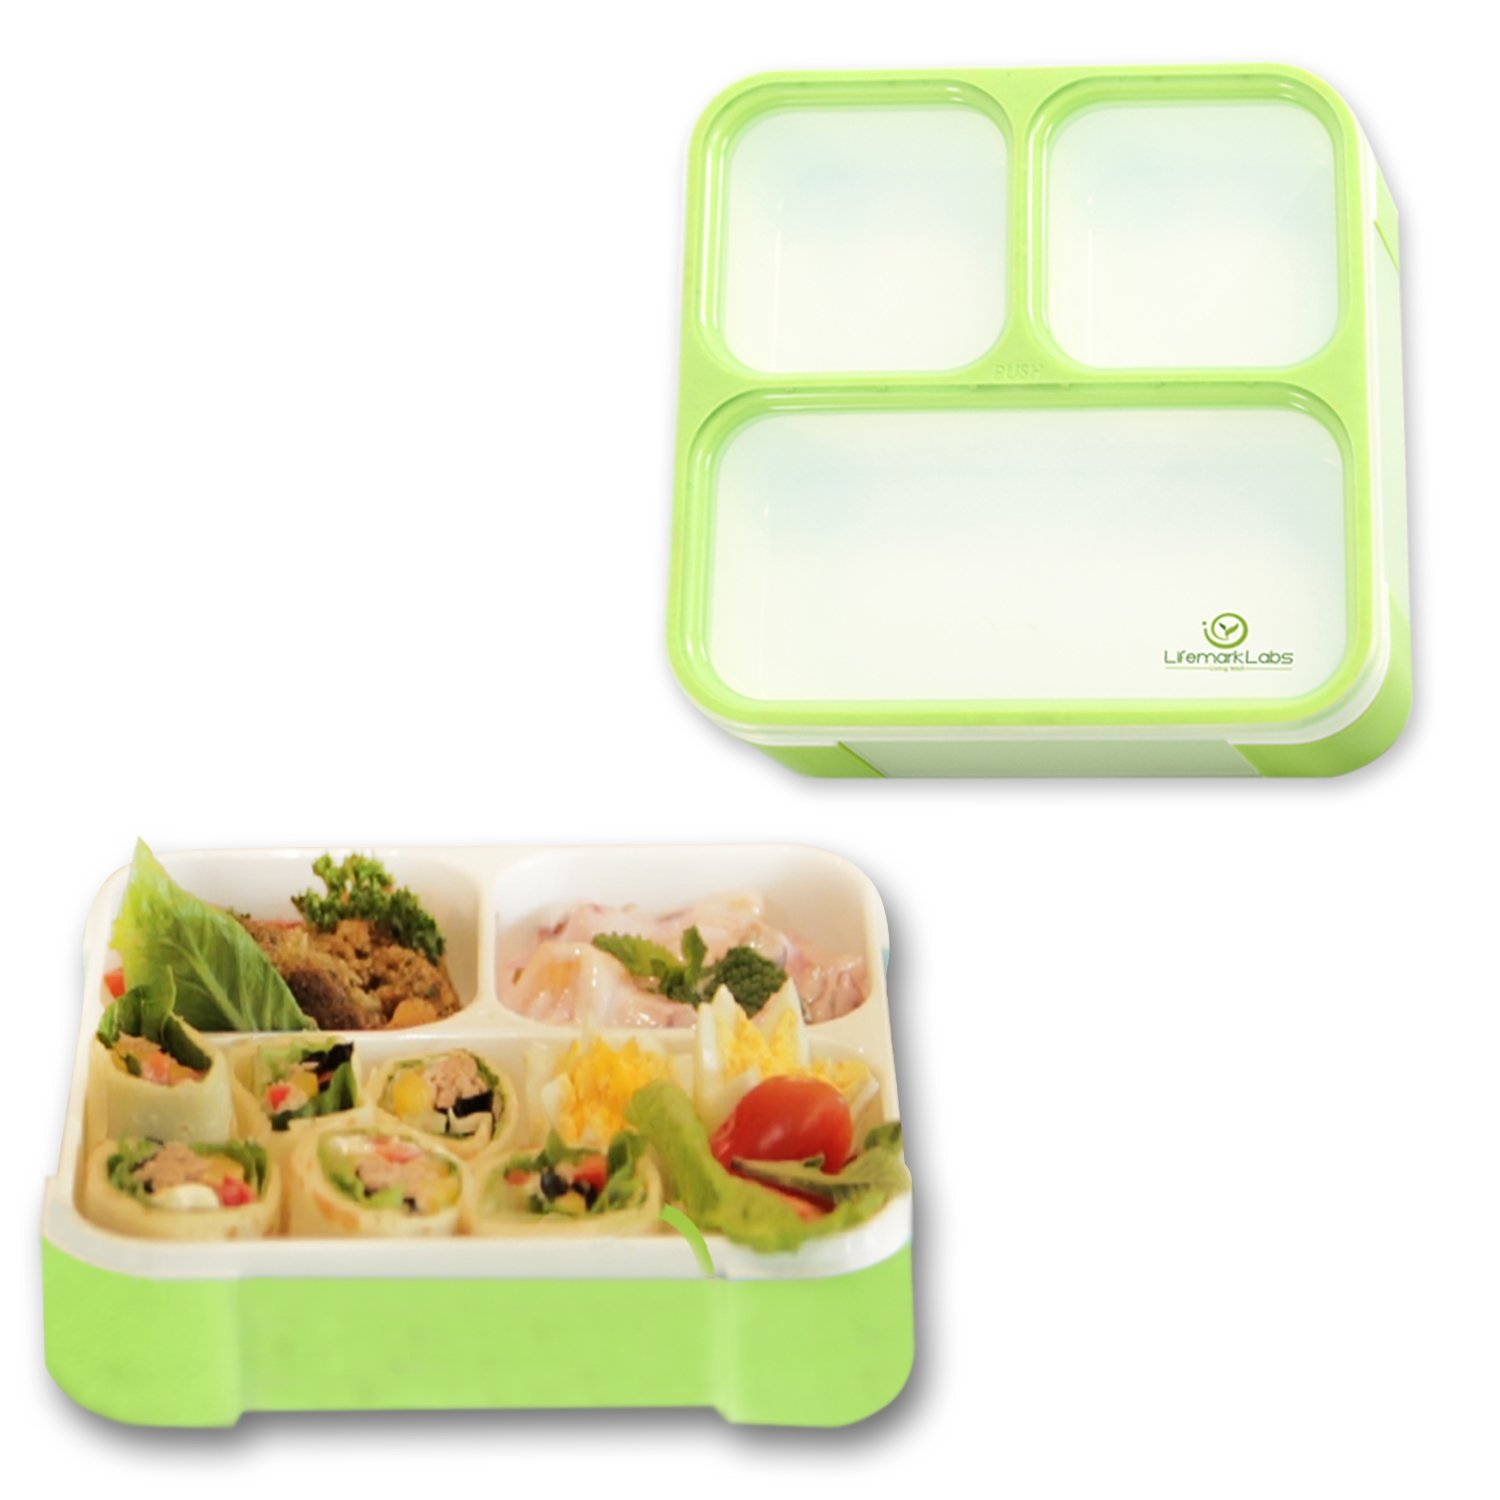 giveaway guy lifemark labs bento box take your snacks and lunch on the go giveaway. Black Bedroom Furniture Sets. Home Design Ideas